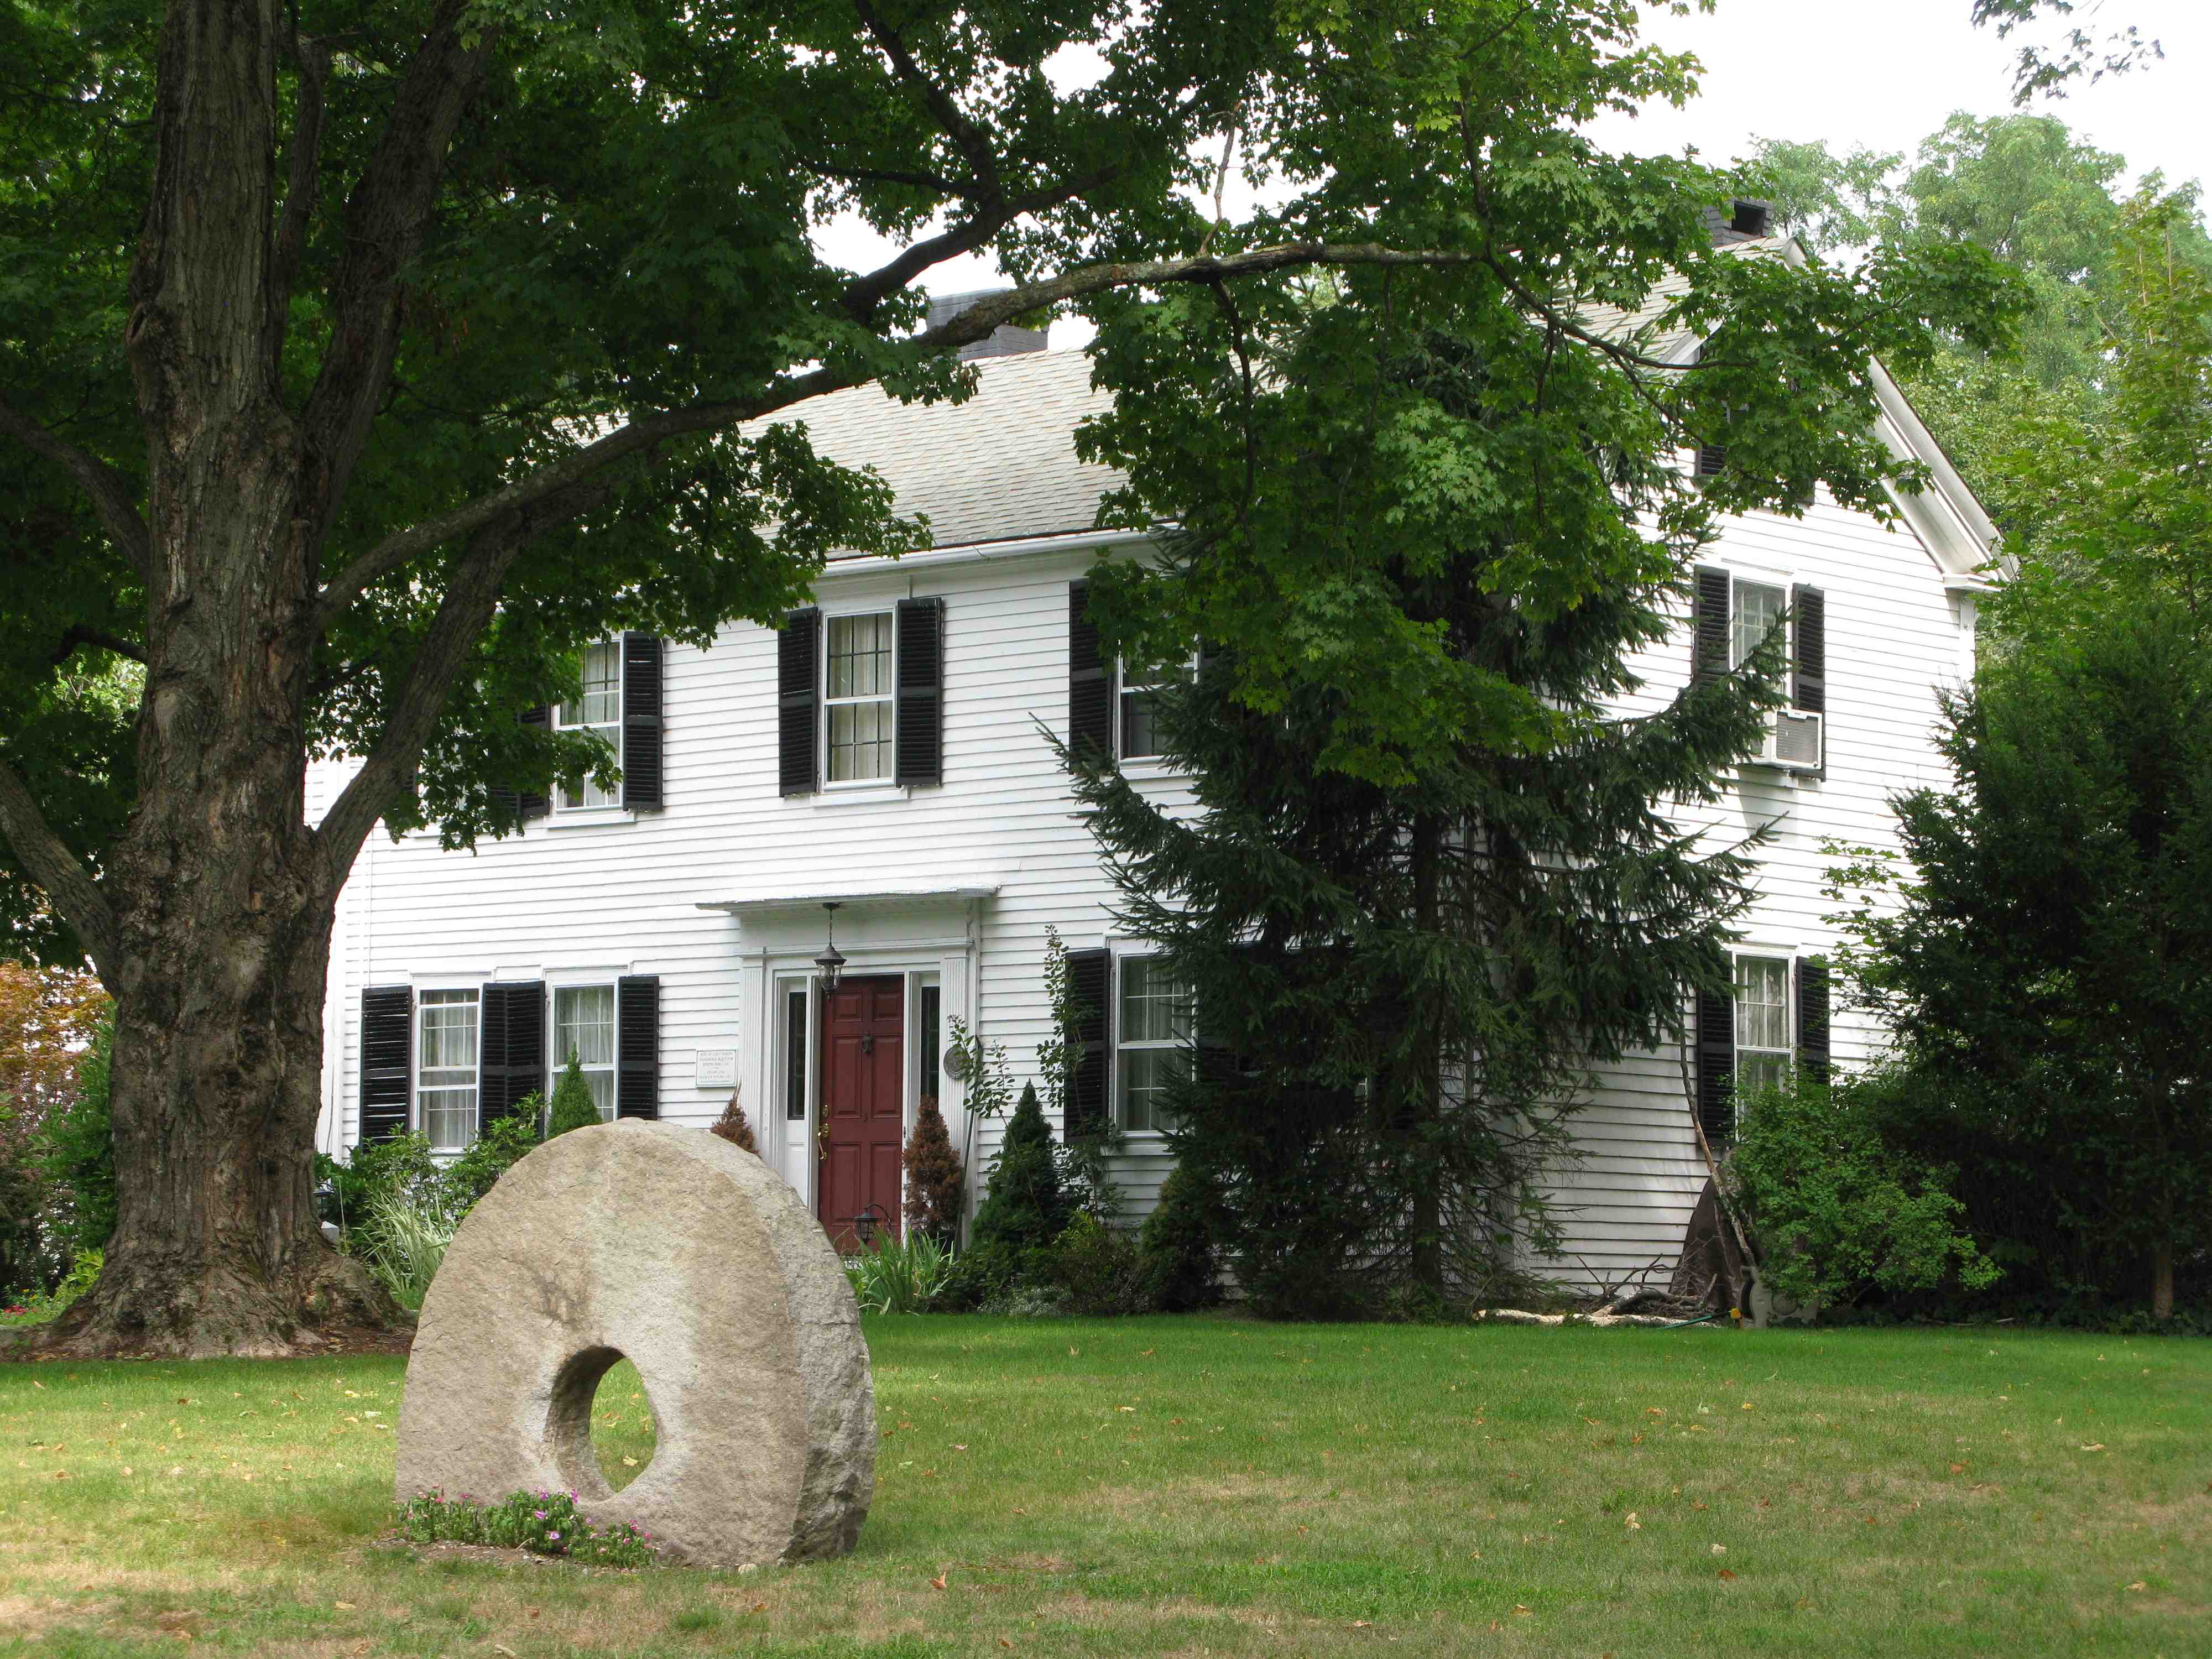 A house at 3 Maple Road, the original farmhouse in the neighborhood